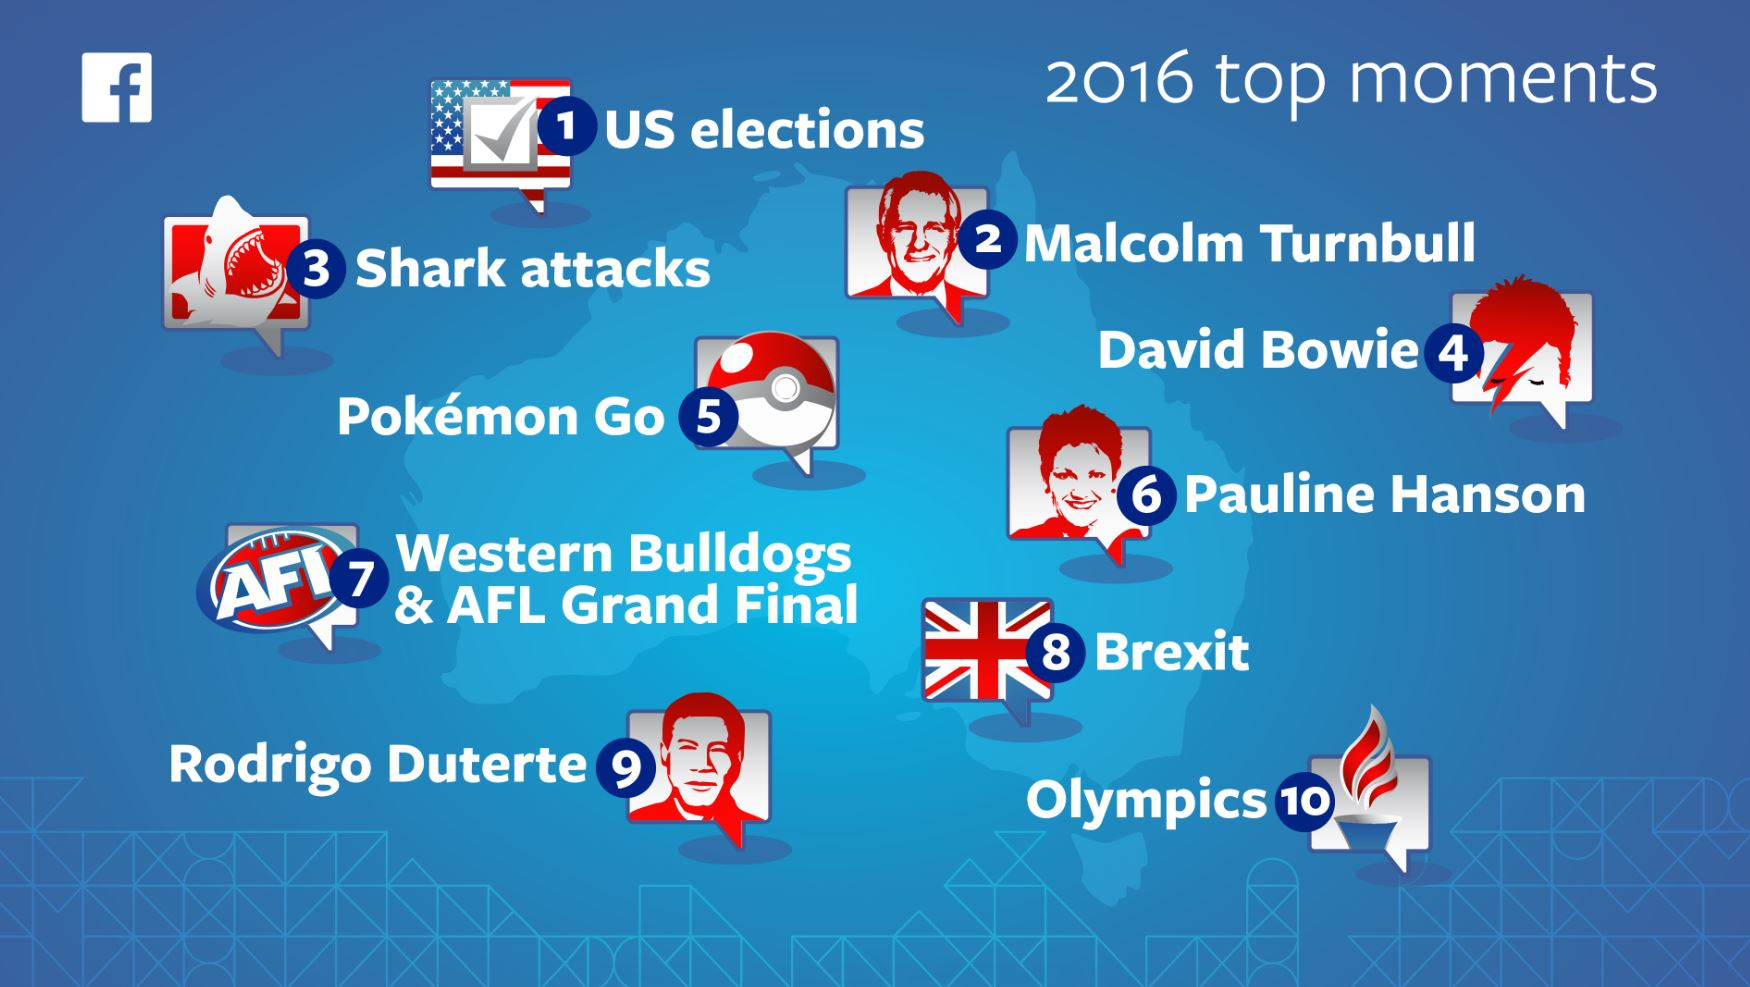 The most talked about topics on Facebook in 2016